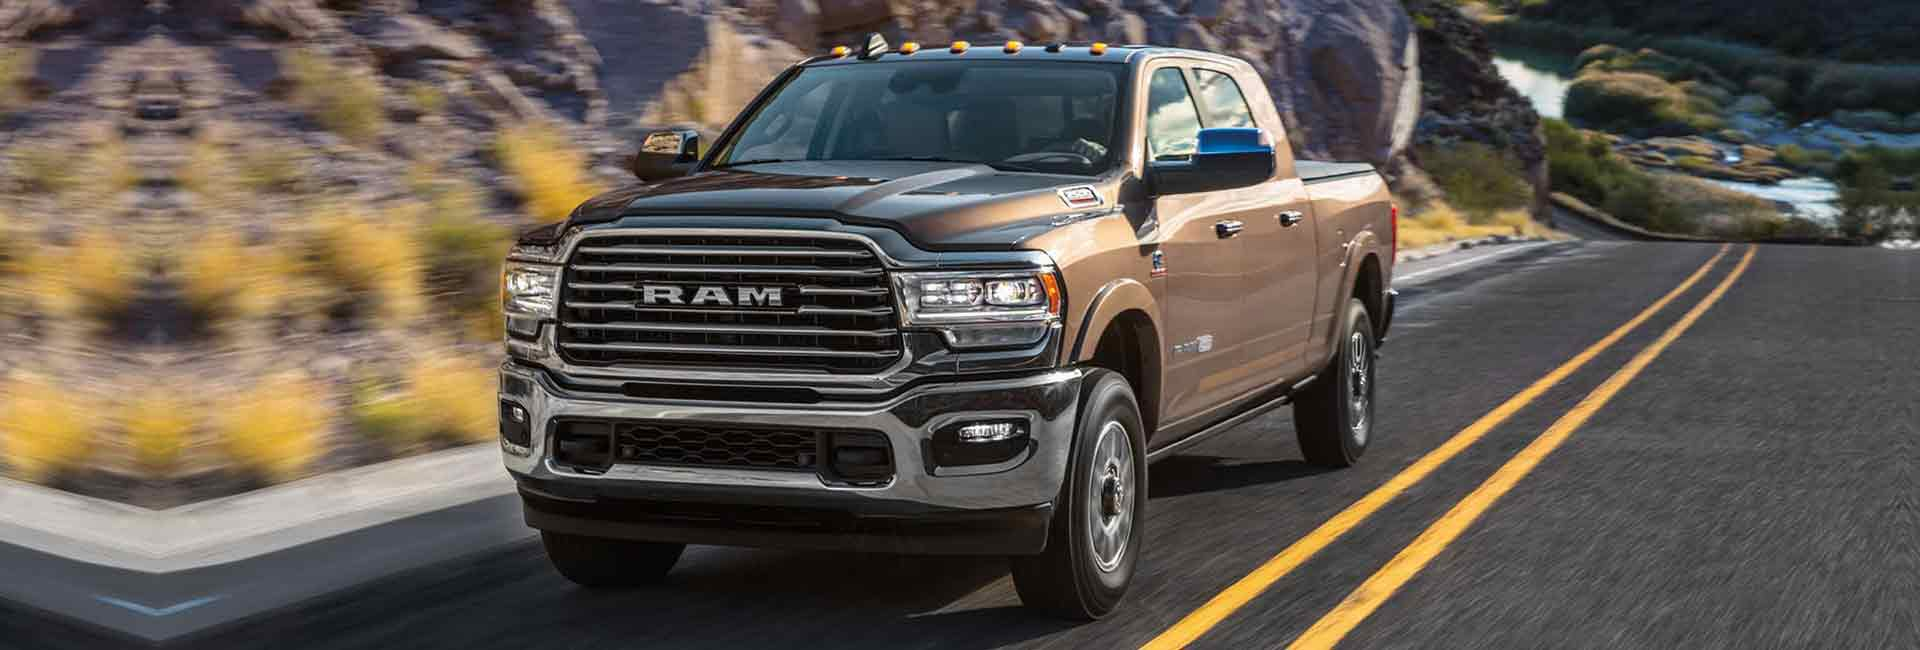 Picture of the 2020 RAM 2500 for sale at Spitzer RAM dealer in Homestead, FL.